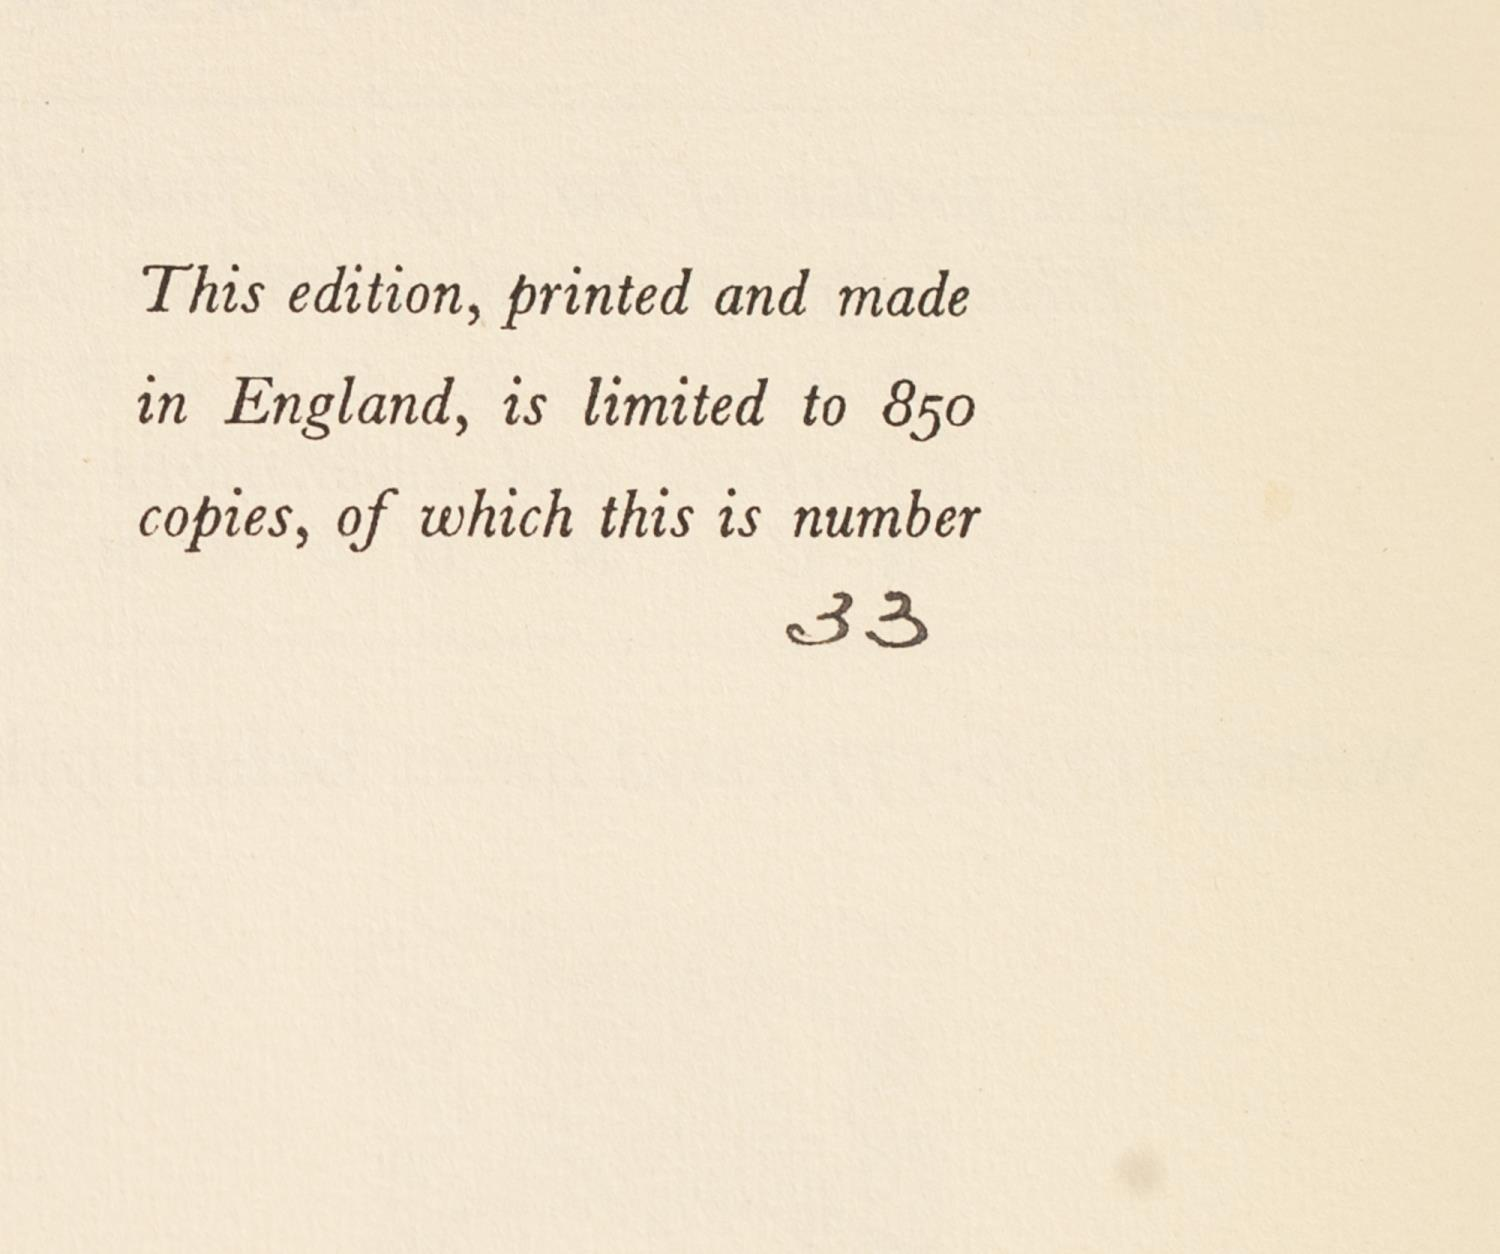 PRIVATE PRESS - TWO TITLES FROM THE NONESUCH PRESS to include The Receipt Book of Elizabeth Raper - Image 4 of 7